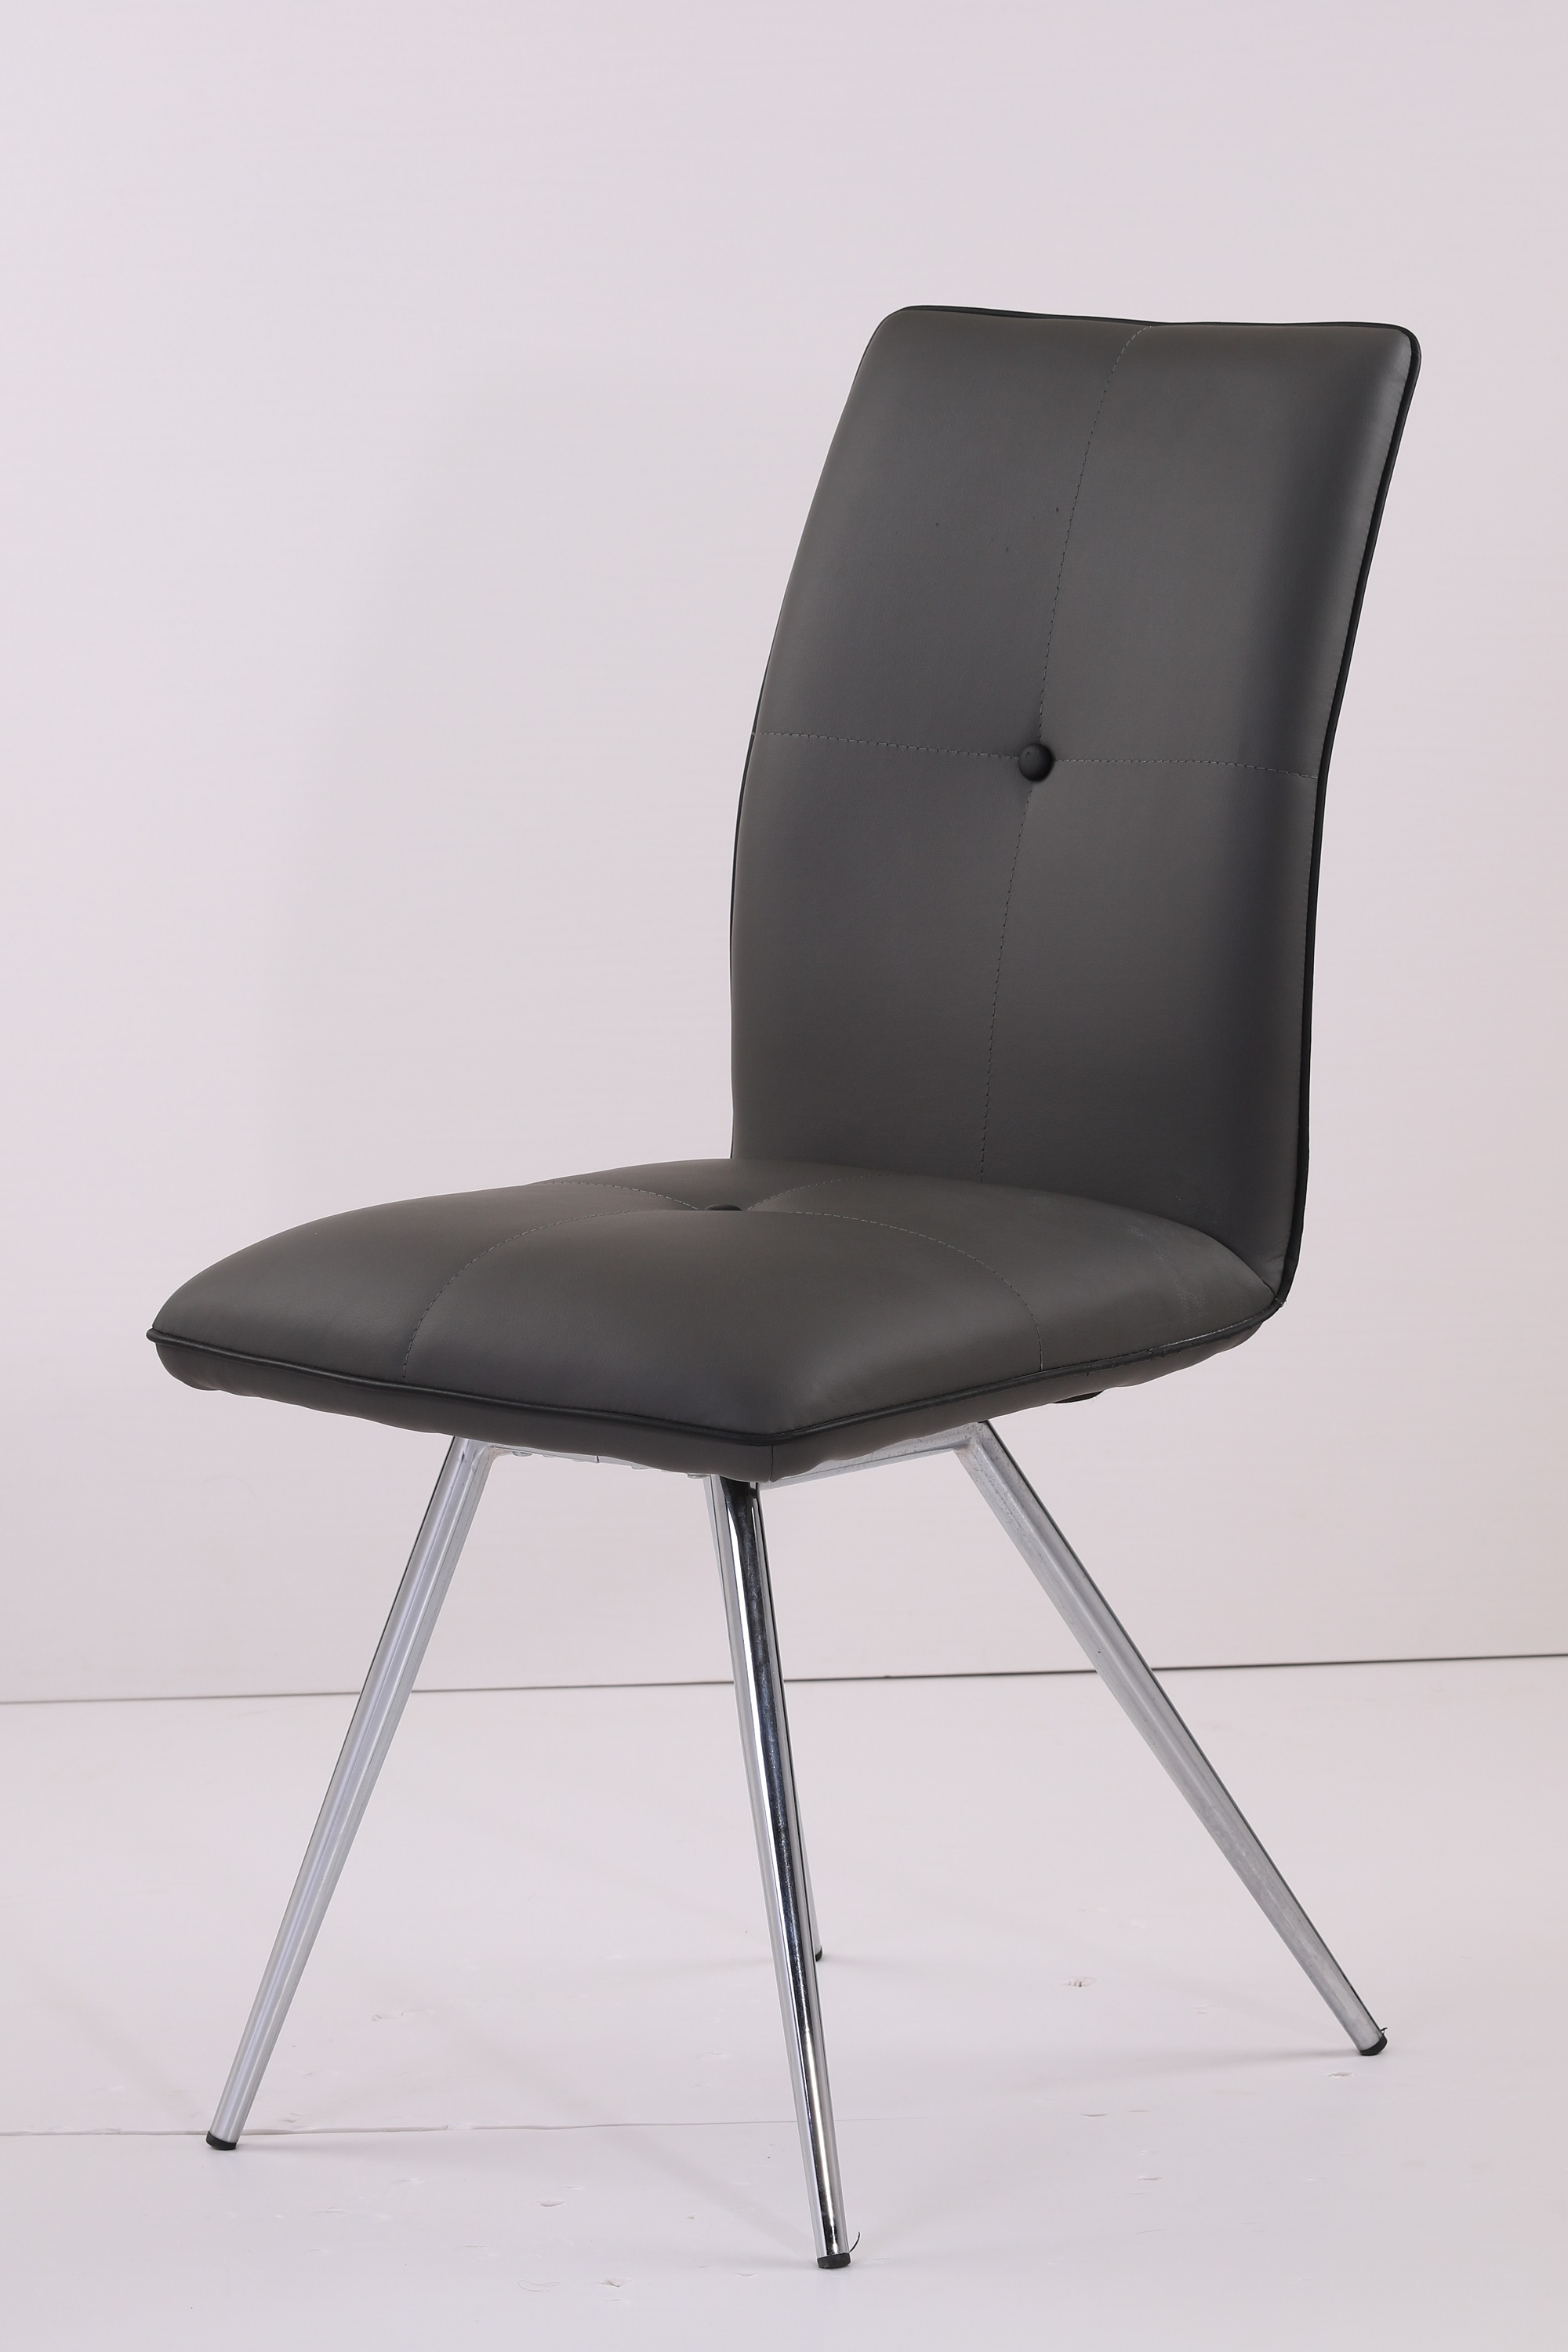 Modern Simple style home Furniture Chromed Frame PU Leather Dining Chair BT043